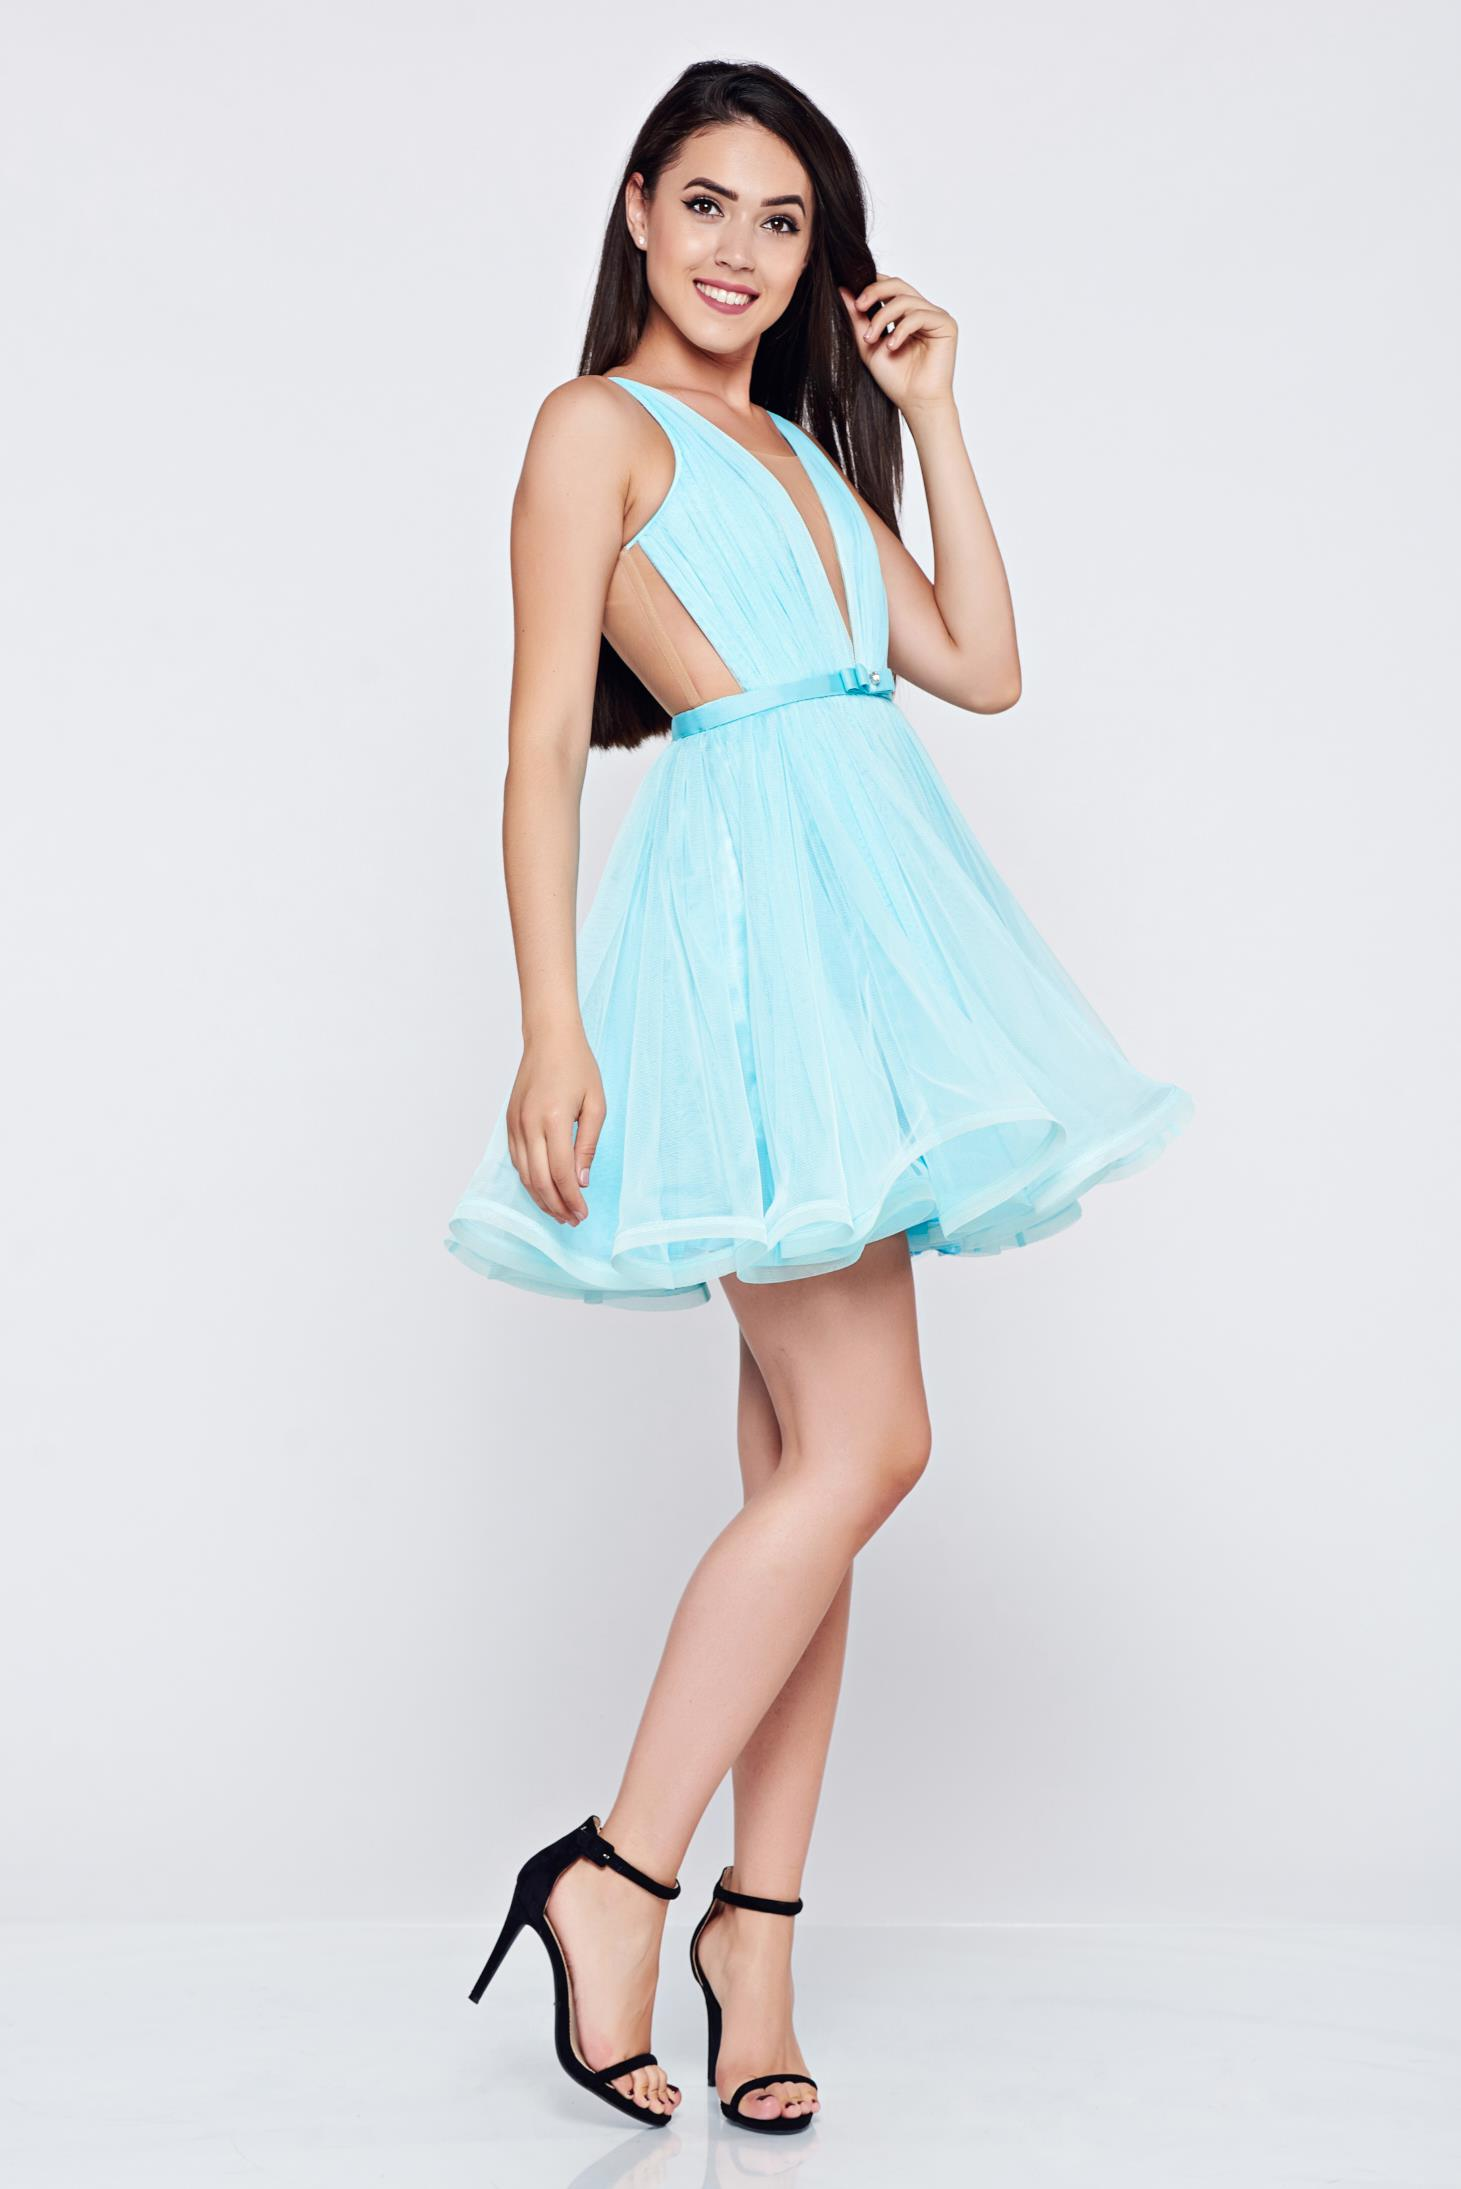 Ana Radu cloche lightblue luxurious dress with a cleavage from tulle with inside lining accessorized with tied waistband